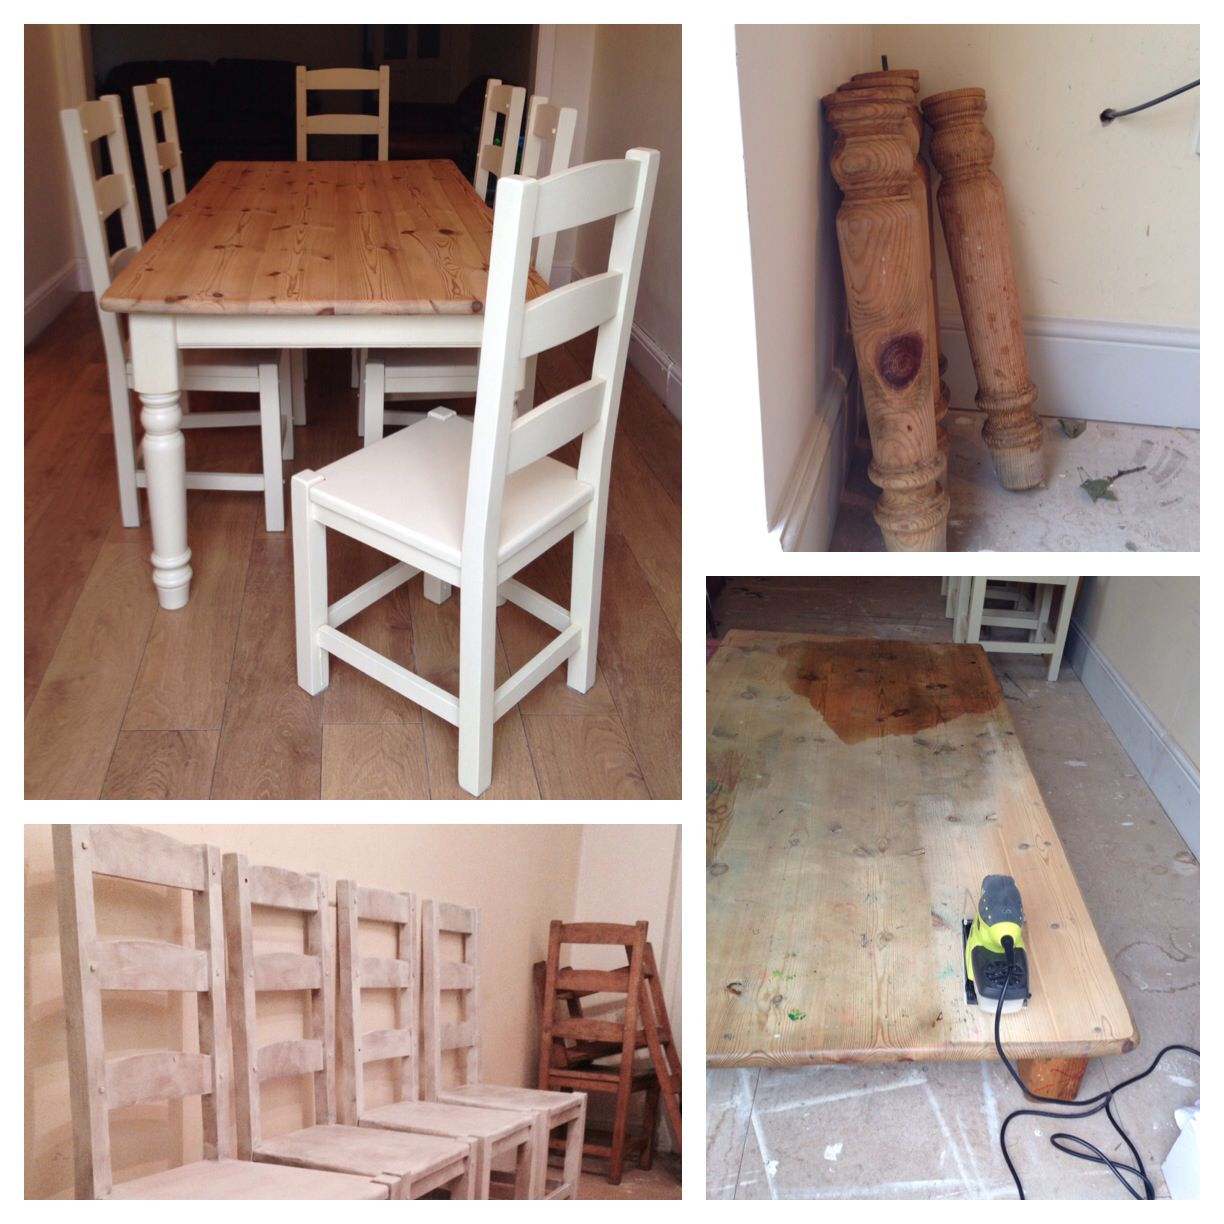 Messy Dining Room: Re-Love Your Home! Minnie's Maison Has Transformed This